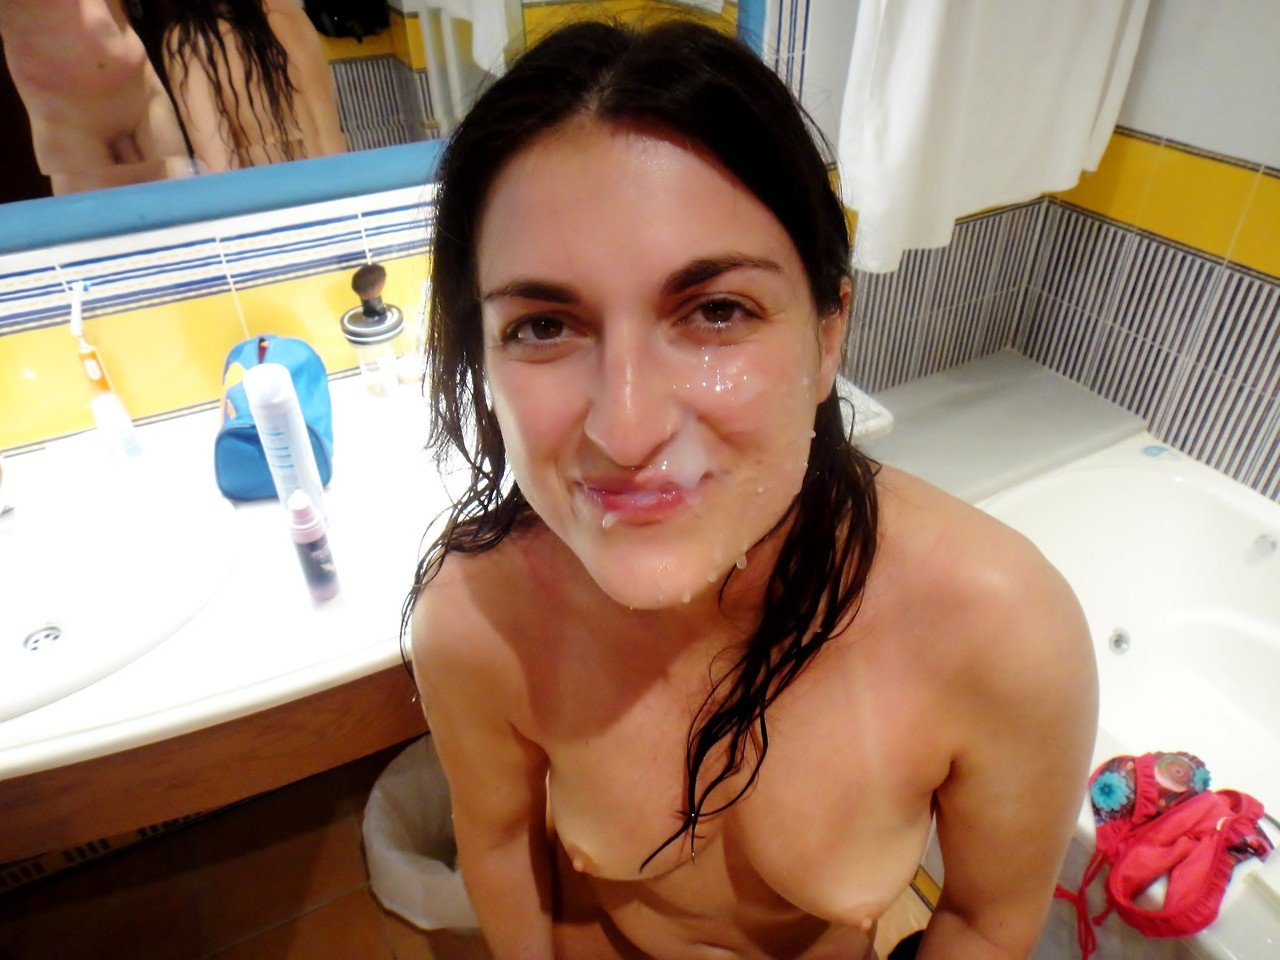 Ebony girls gets a quick facial from huge amateur facial photo 4